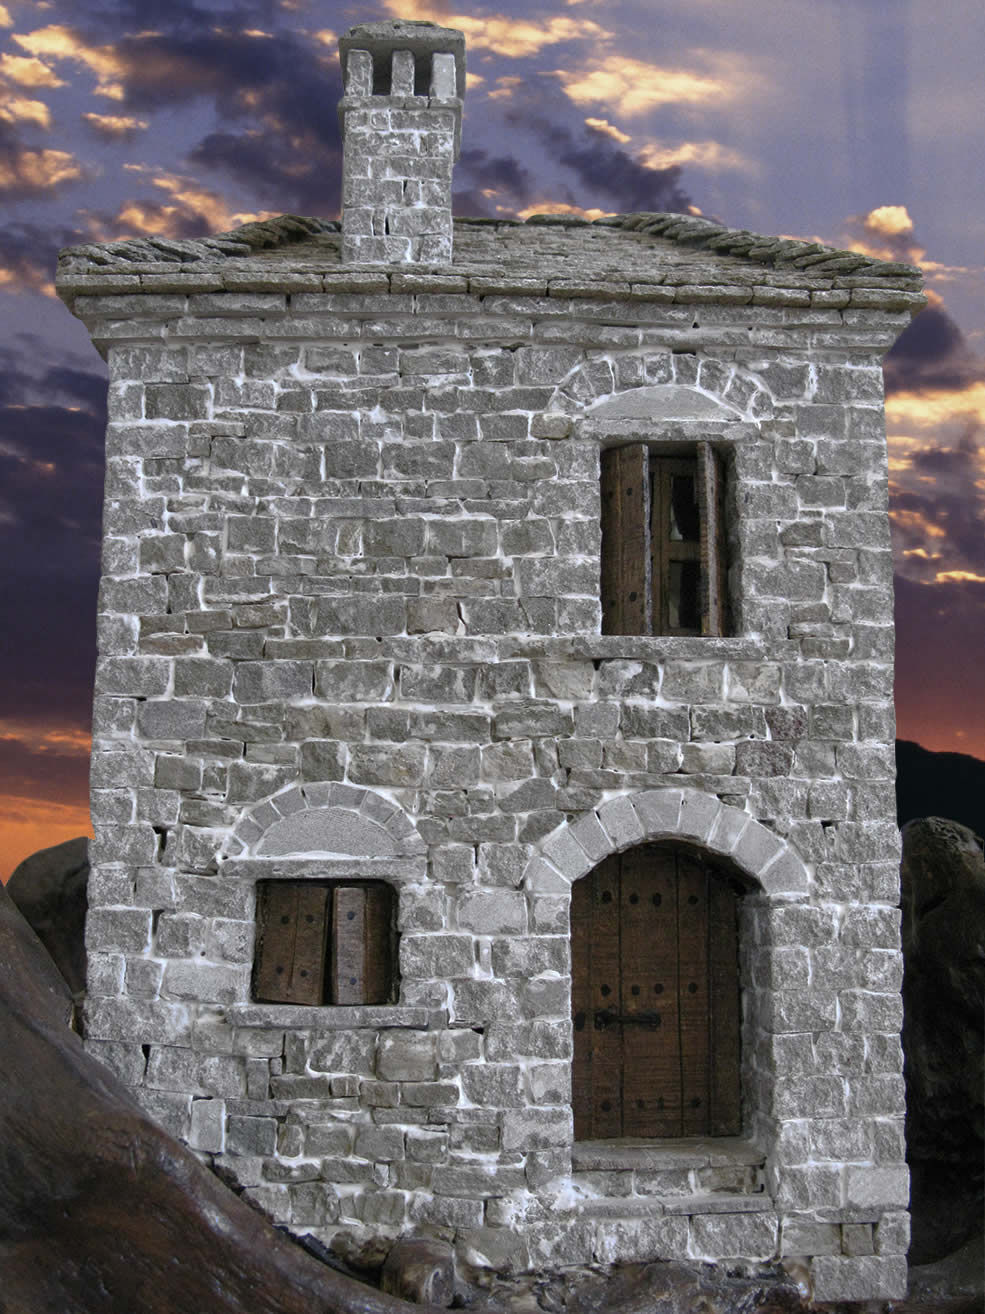 A scale model of a traditional stone built house in Konitsa